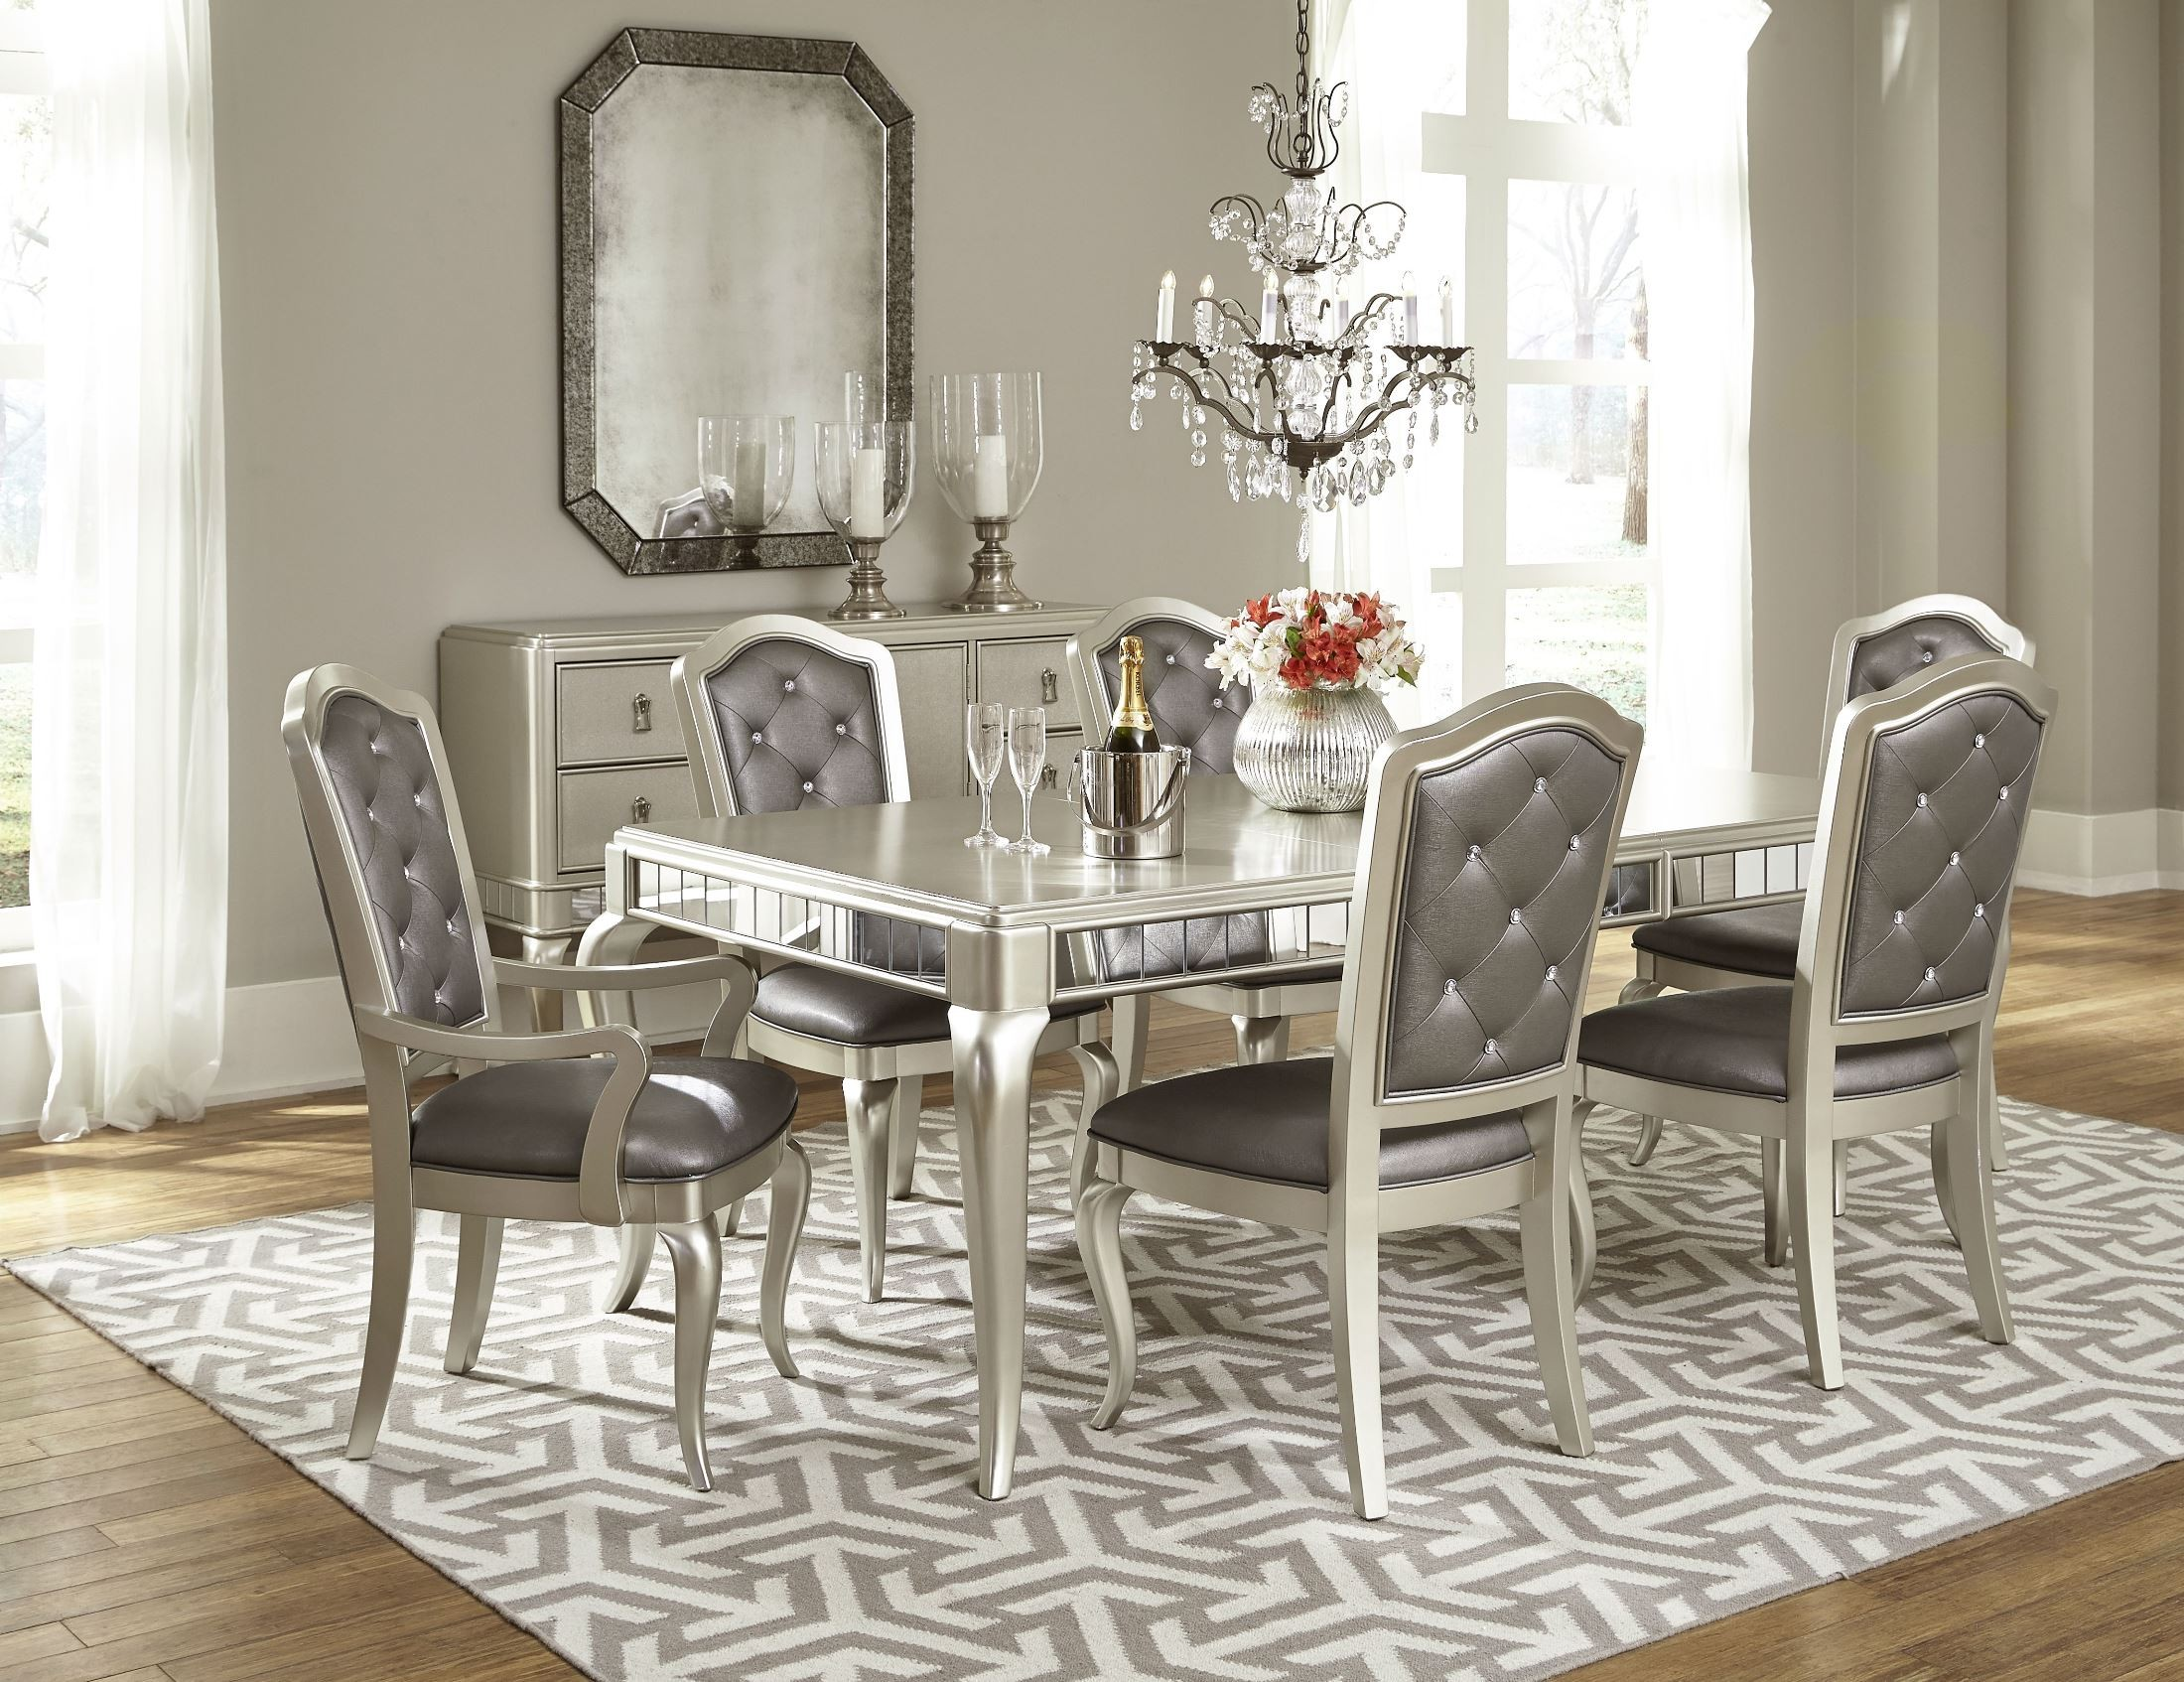 one dining bloomingdale way reviews pdx dinning furniture allium set wayfair table room